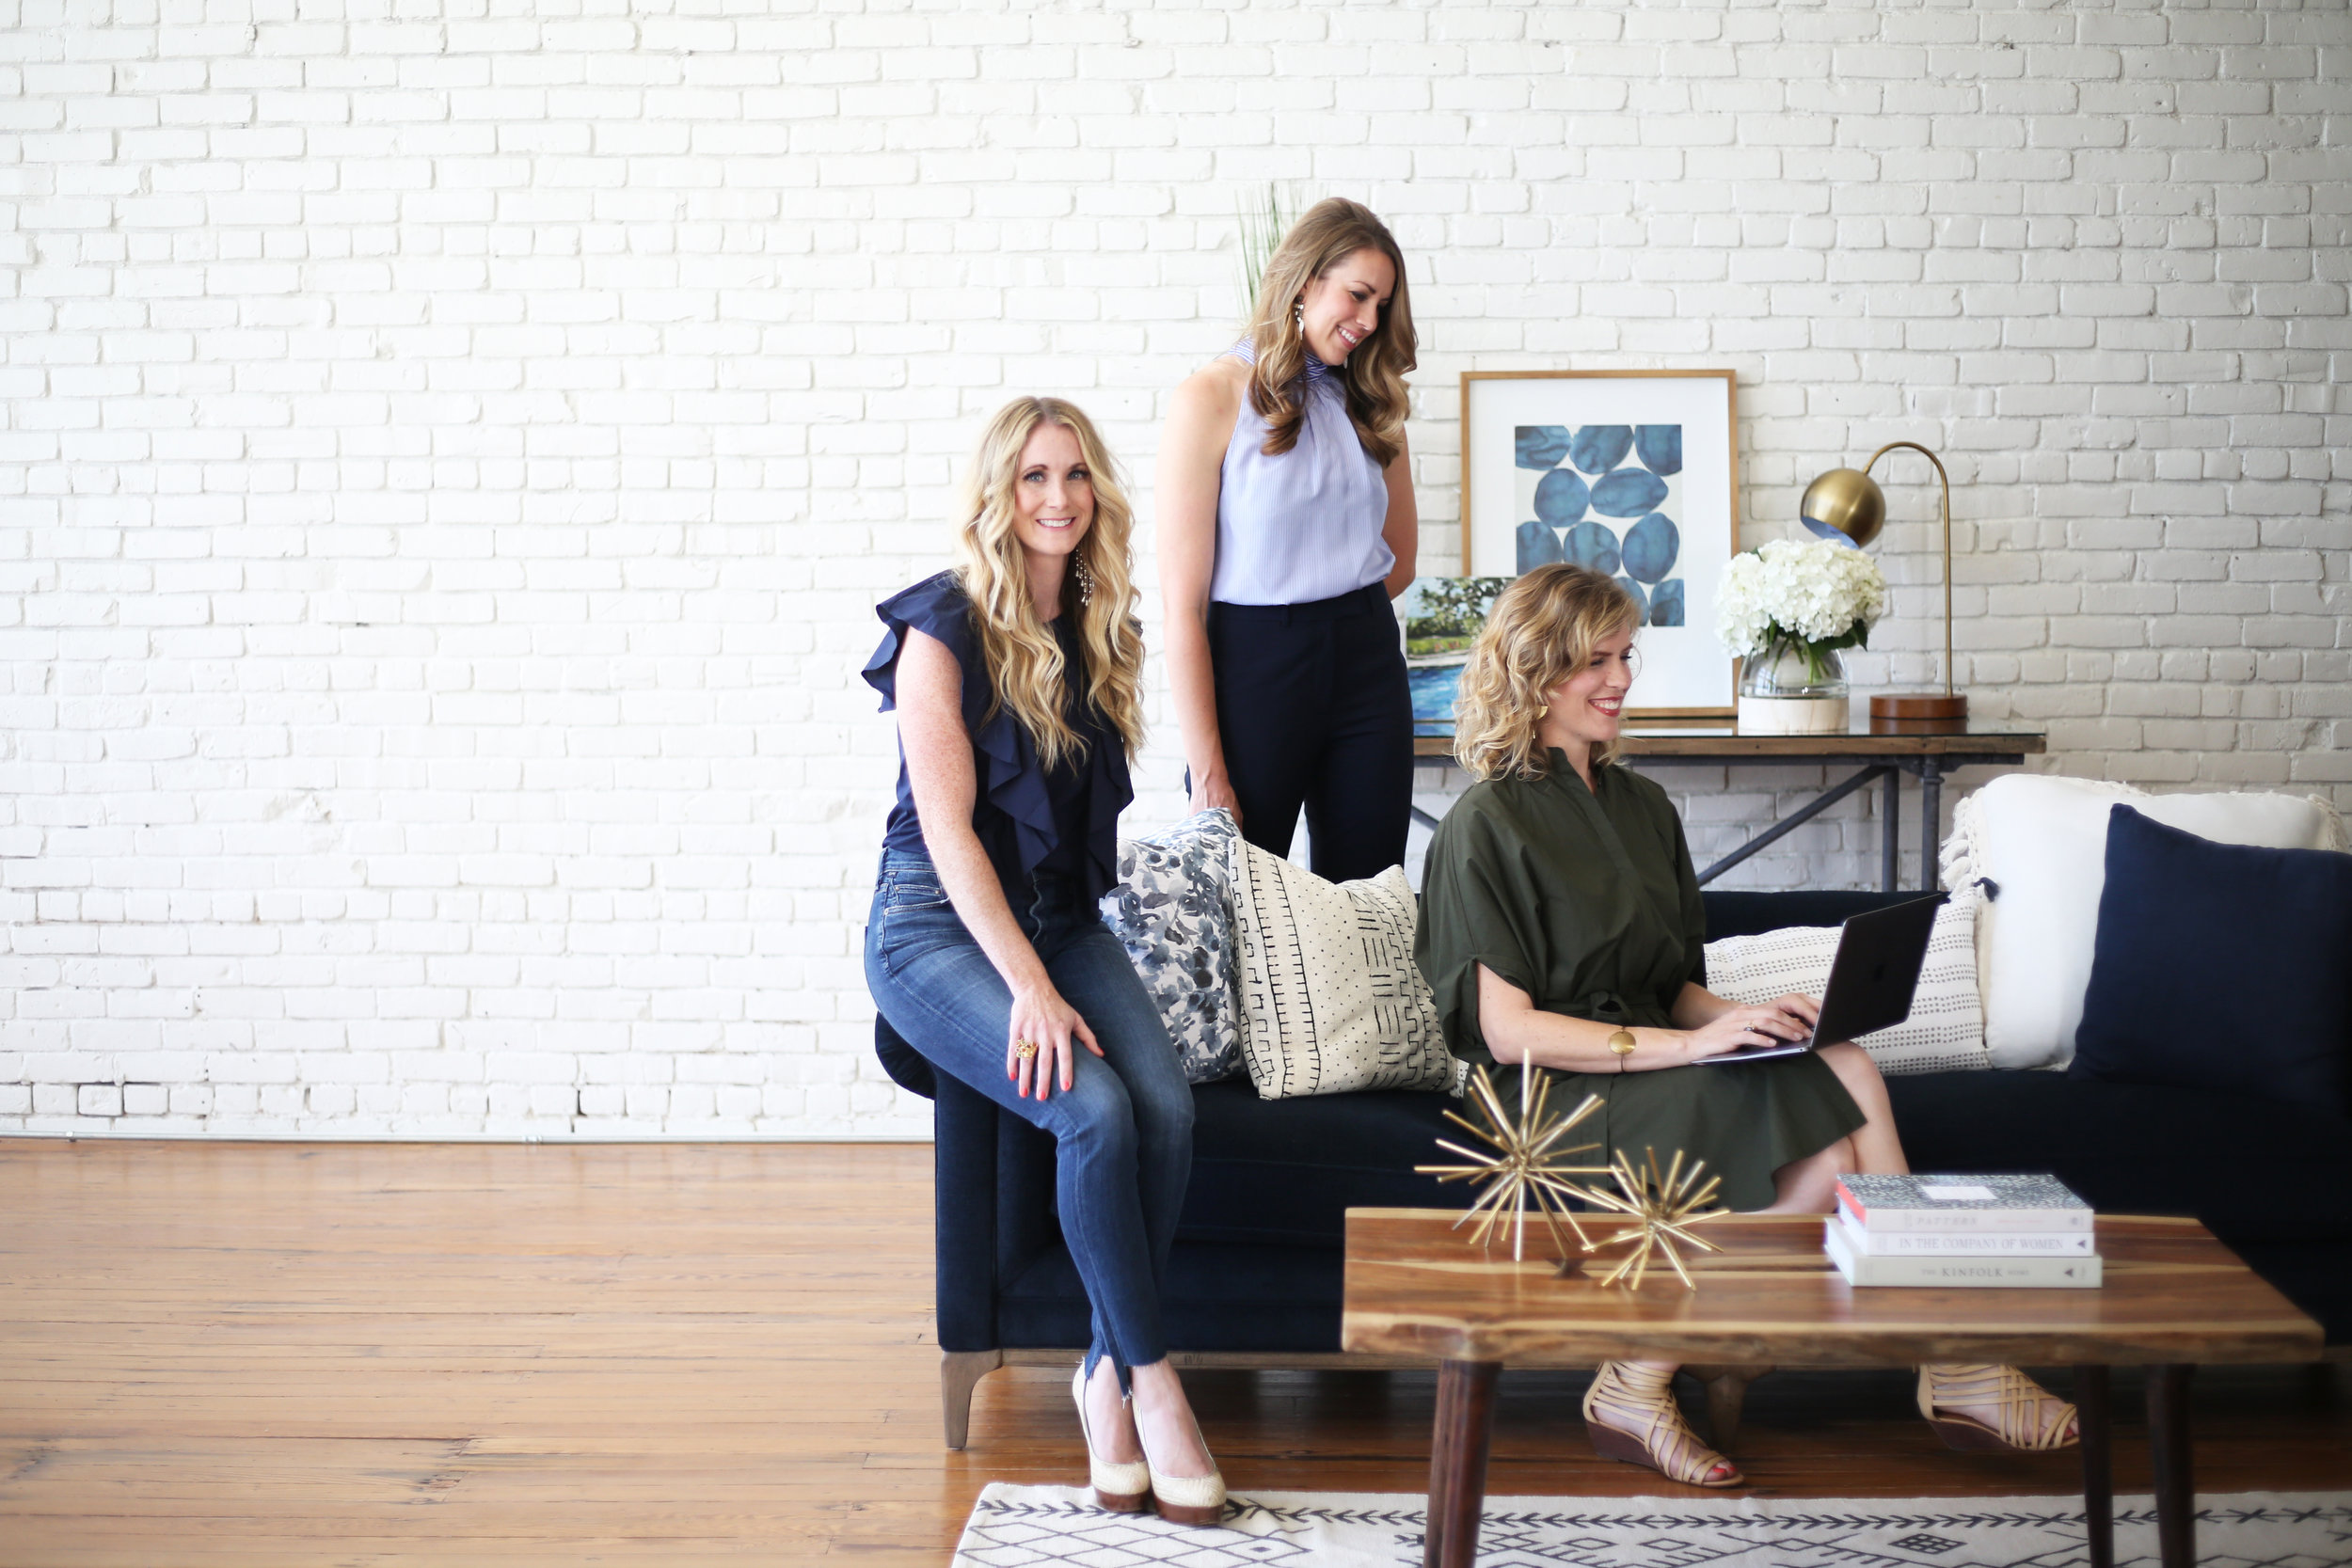 britney-yerby-of-stone-and-acre-real-estate-introduces-herself-to-the-team